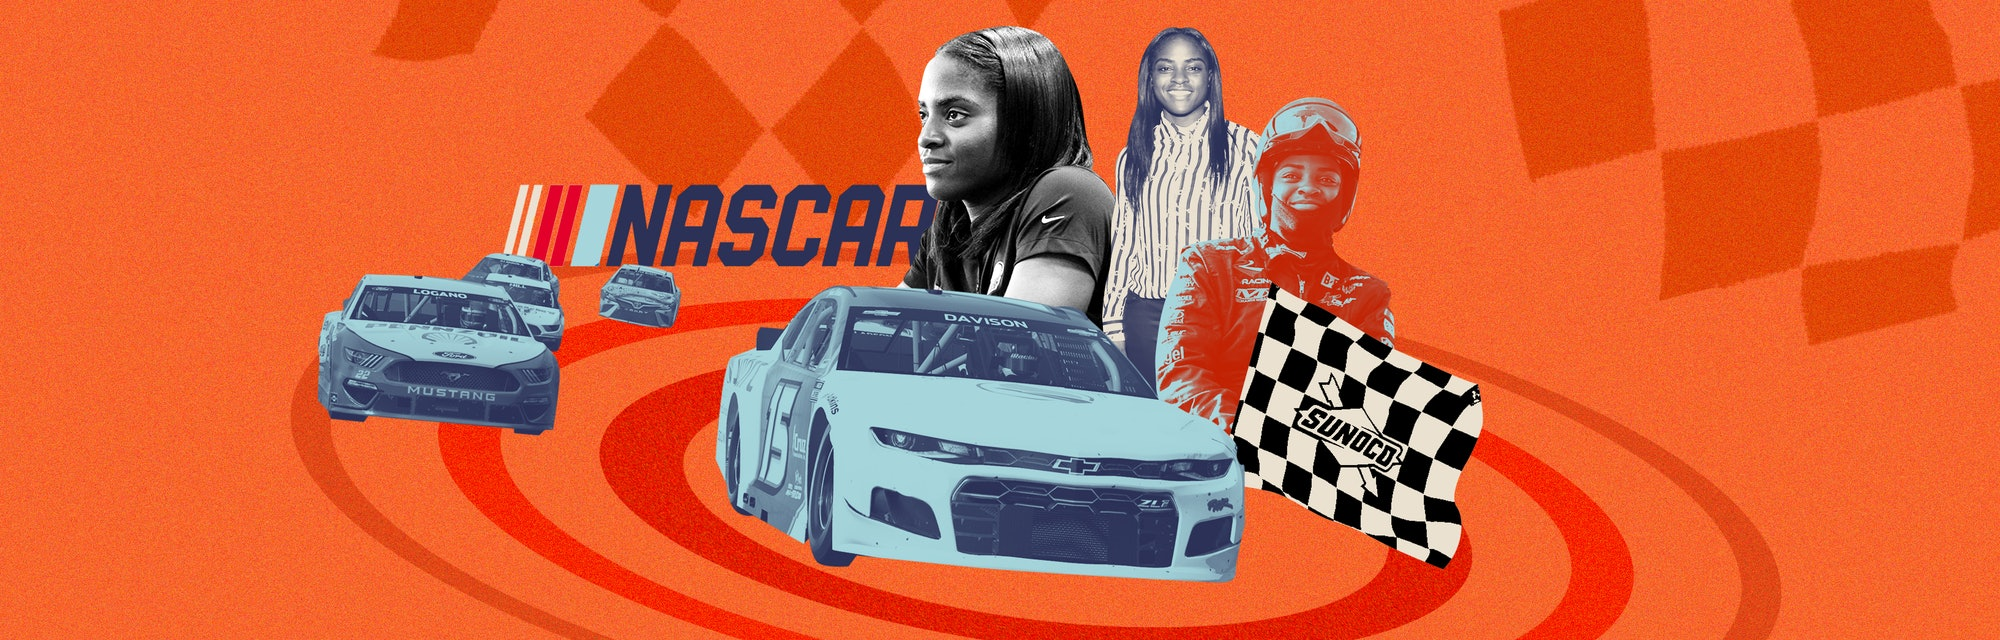 Brehanna Daniels On What Being A NASCAR Pit Crew Member Is Really Like